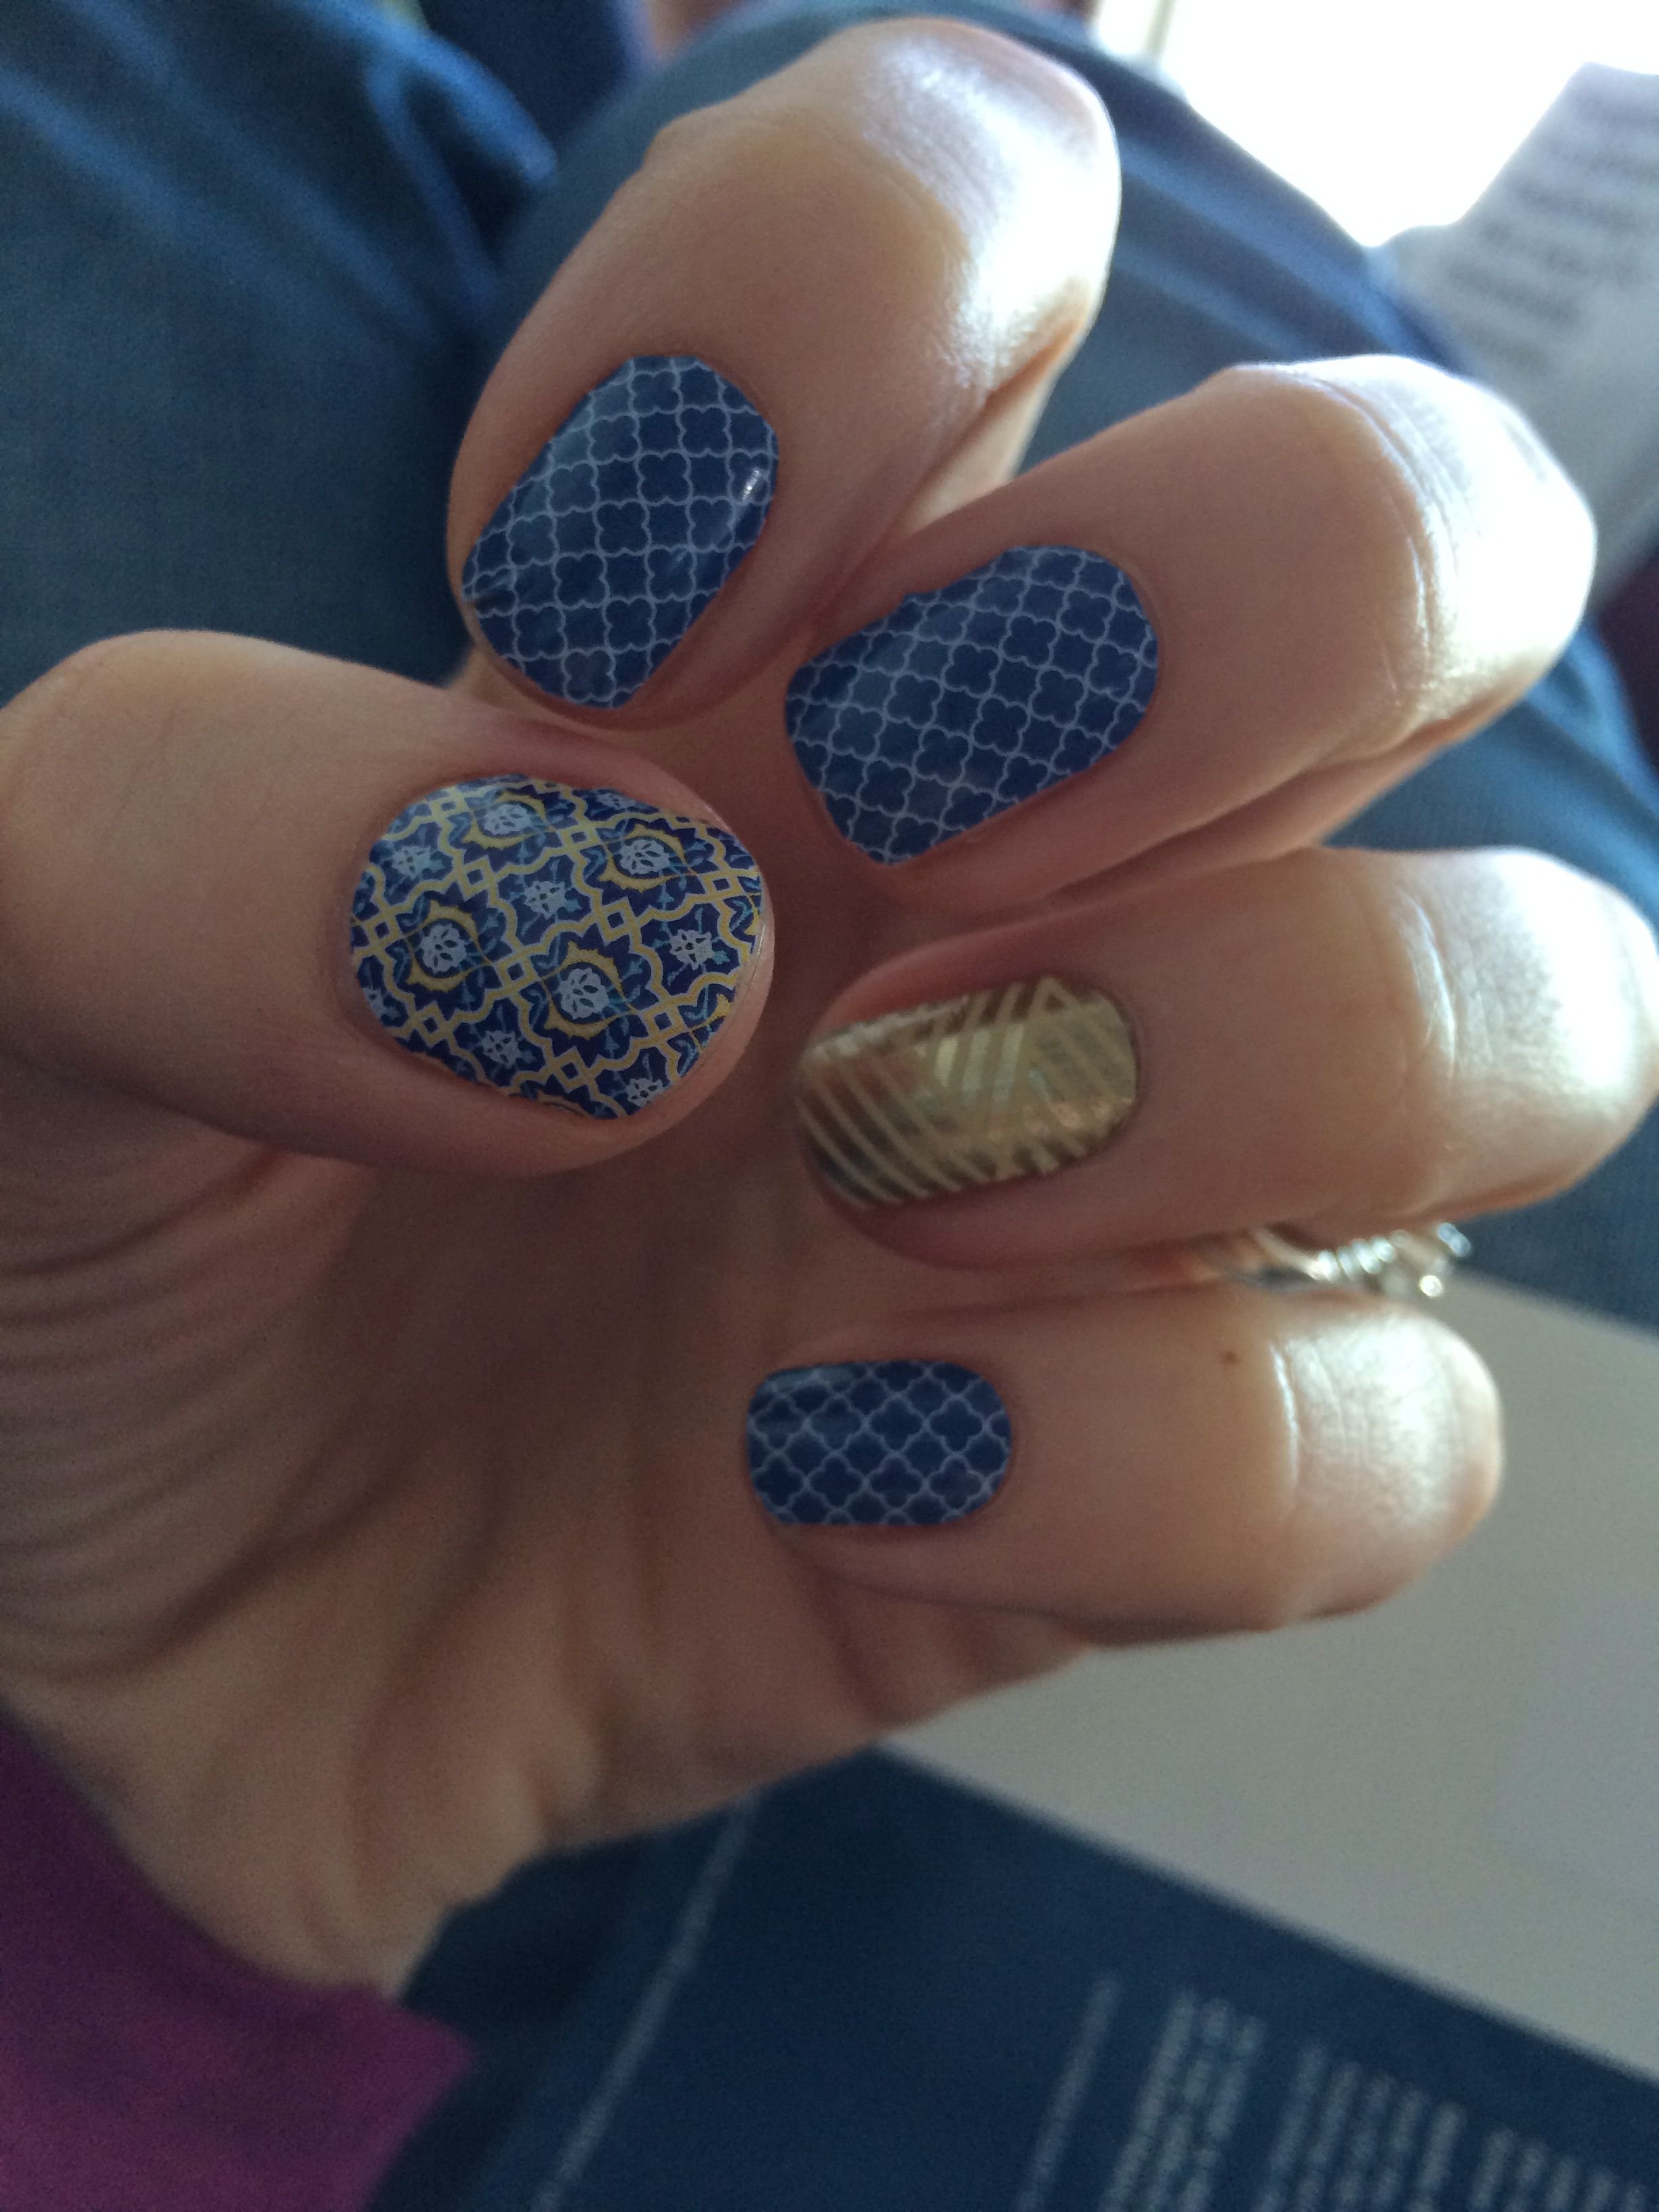 Home » Jamberry What Is An Accent Sheet